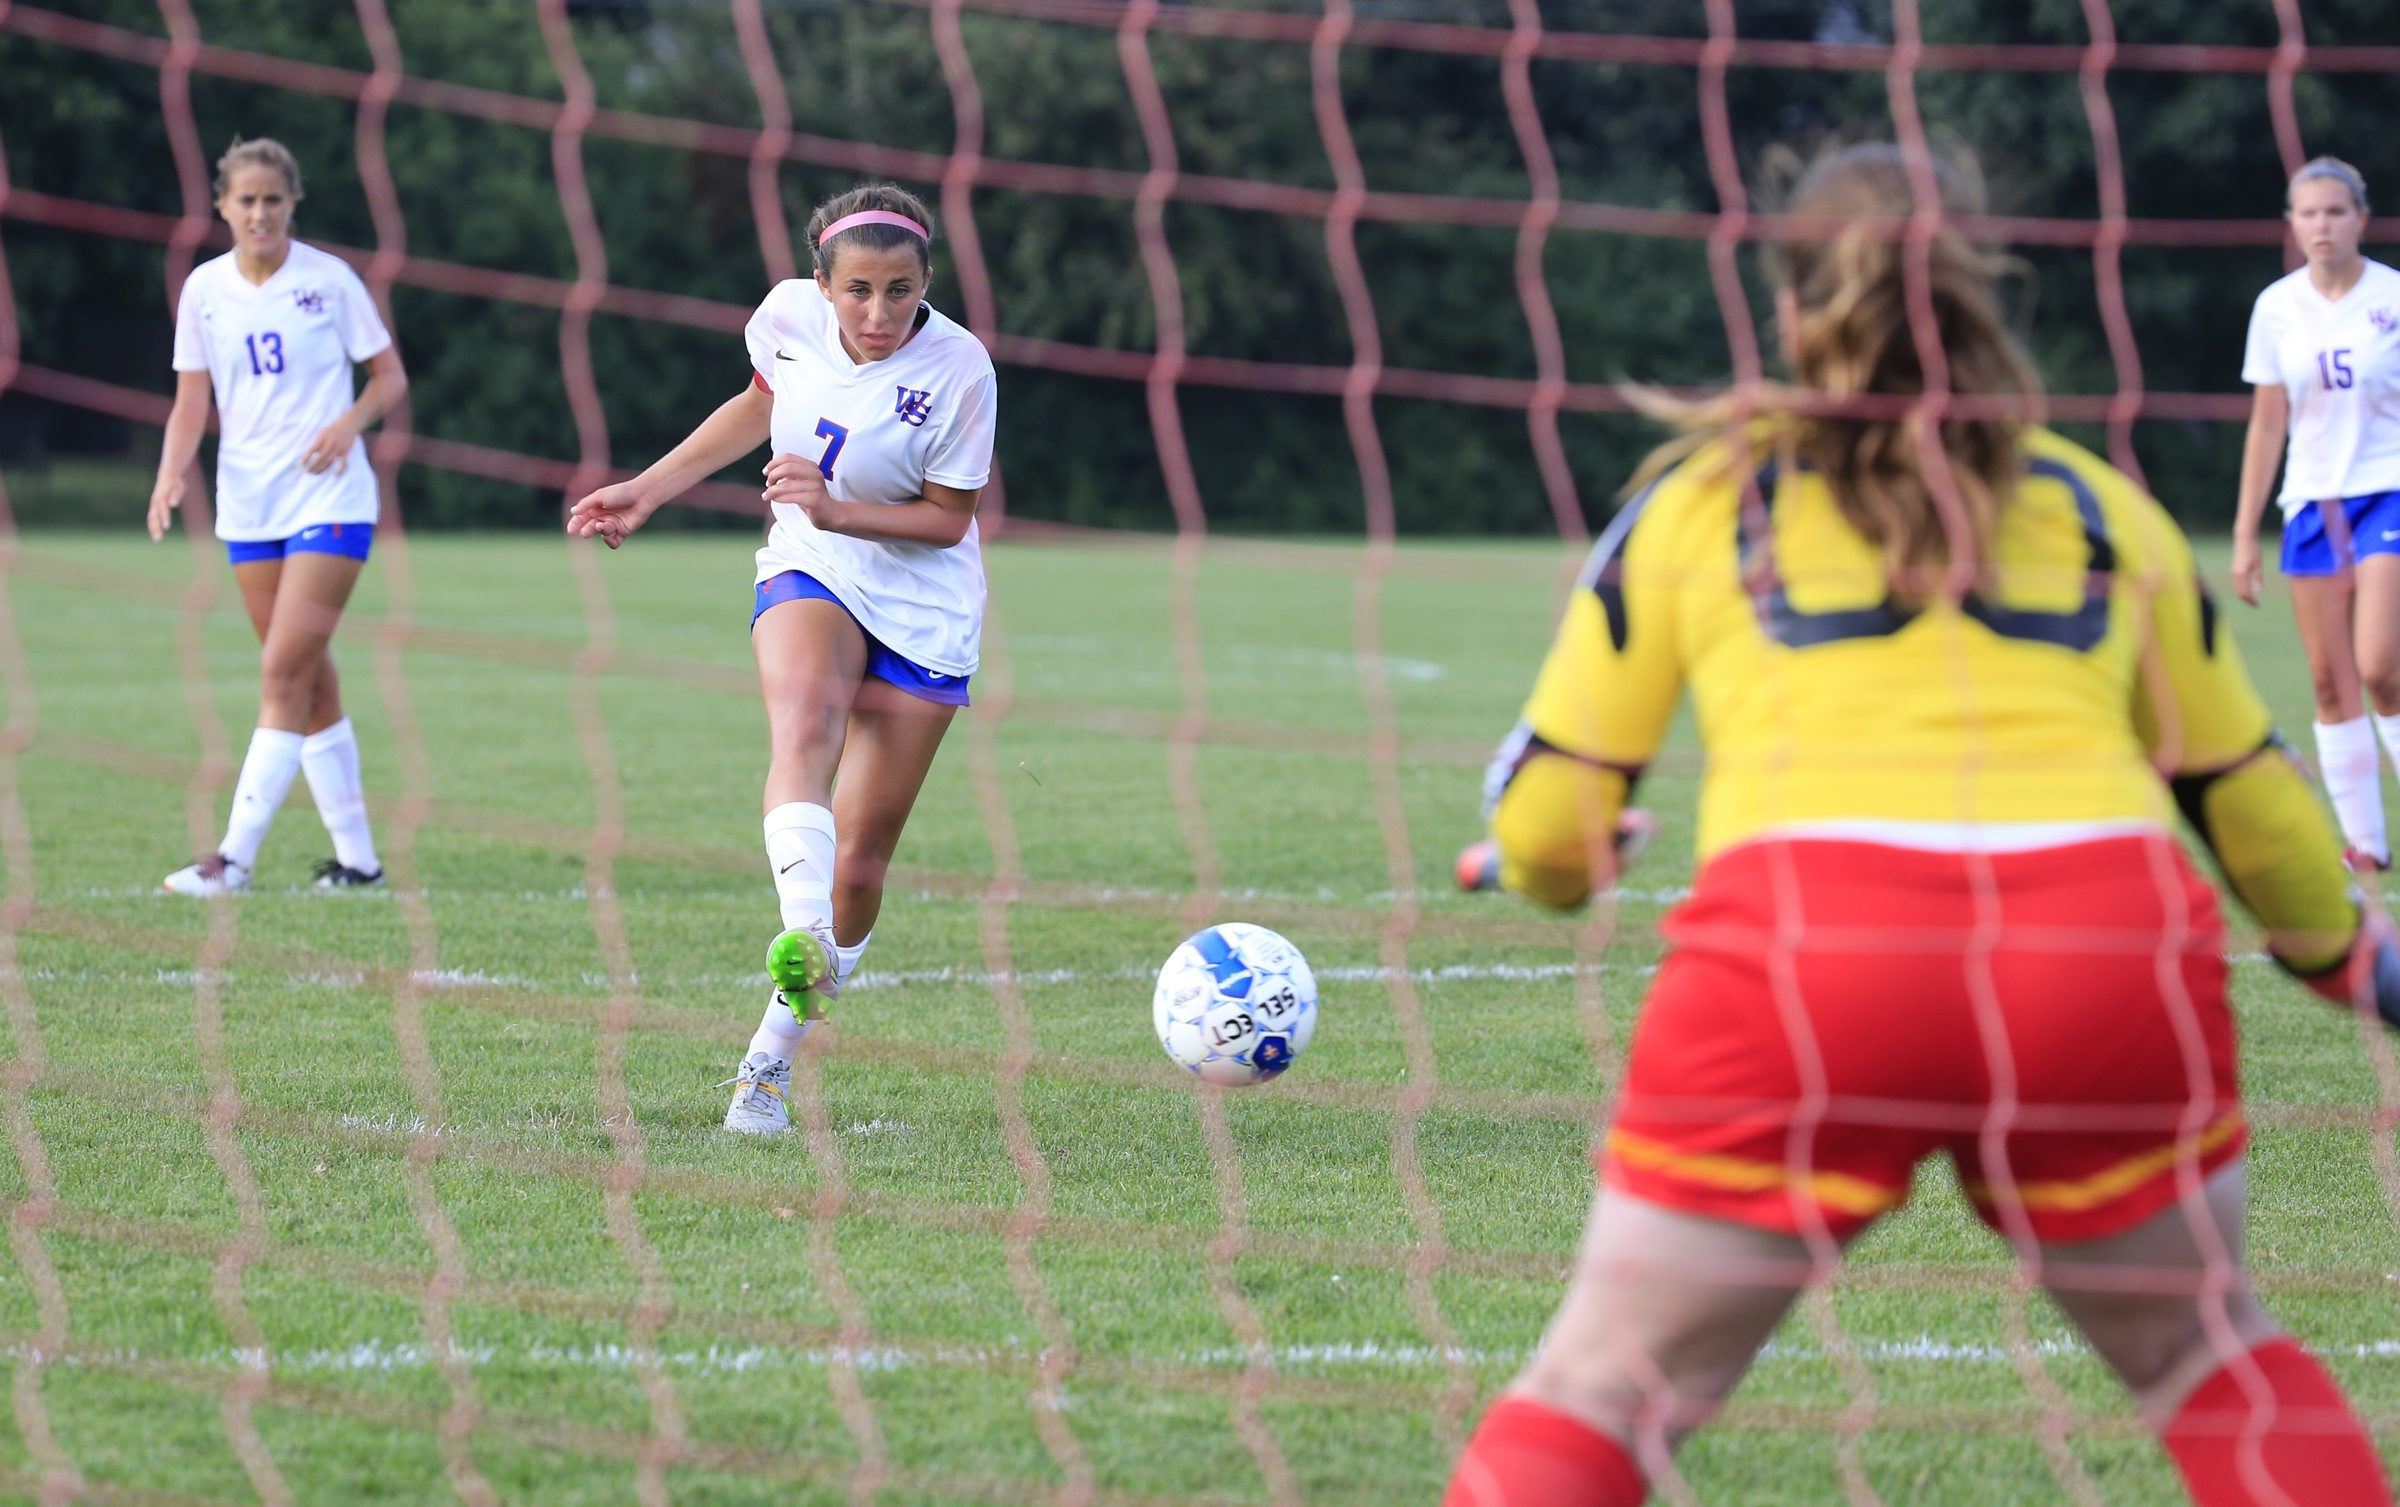 Williamsville South's Jamie Boyar scores on a penalty kick against Williamsville East goalkeeper Sara Penapento in Tuesday's game.